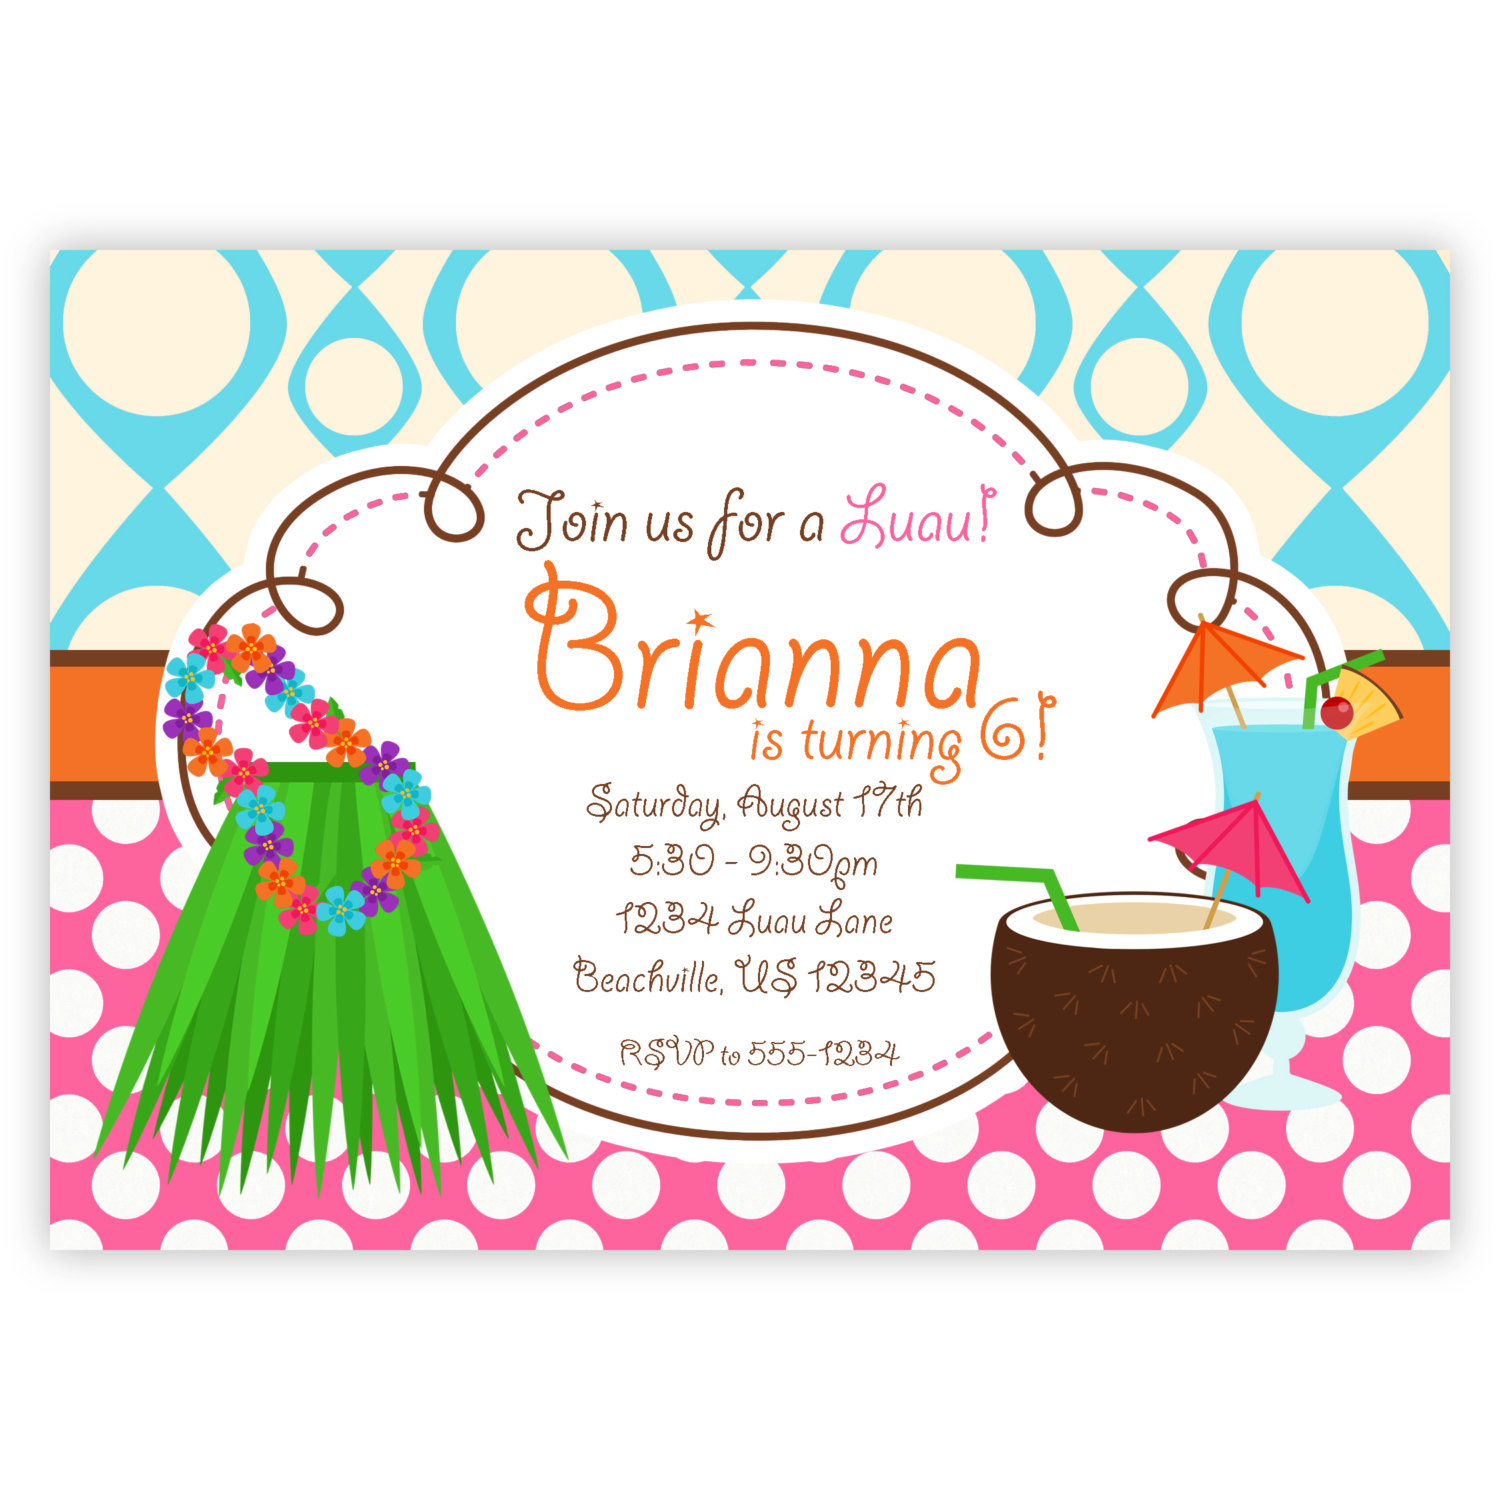 Bbq Party Invitation Templates Free | Clipart Panda - Free Clipart ...